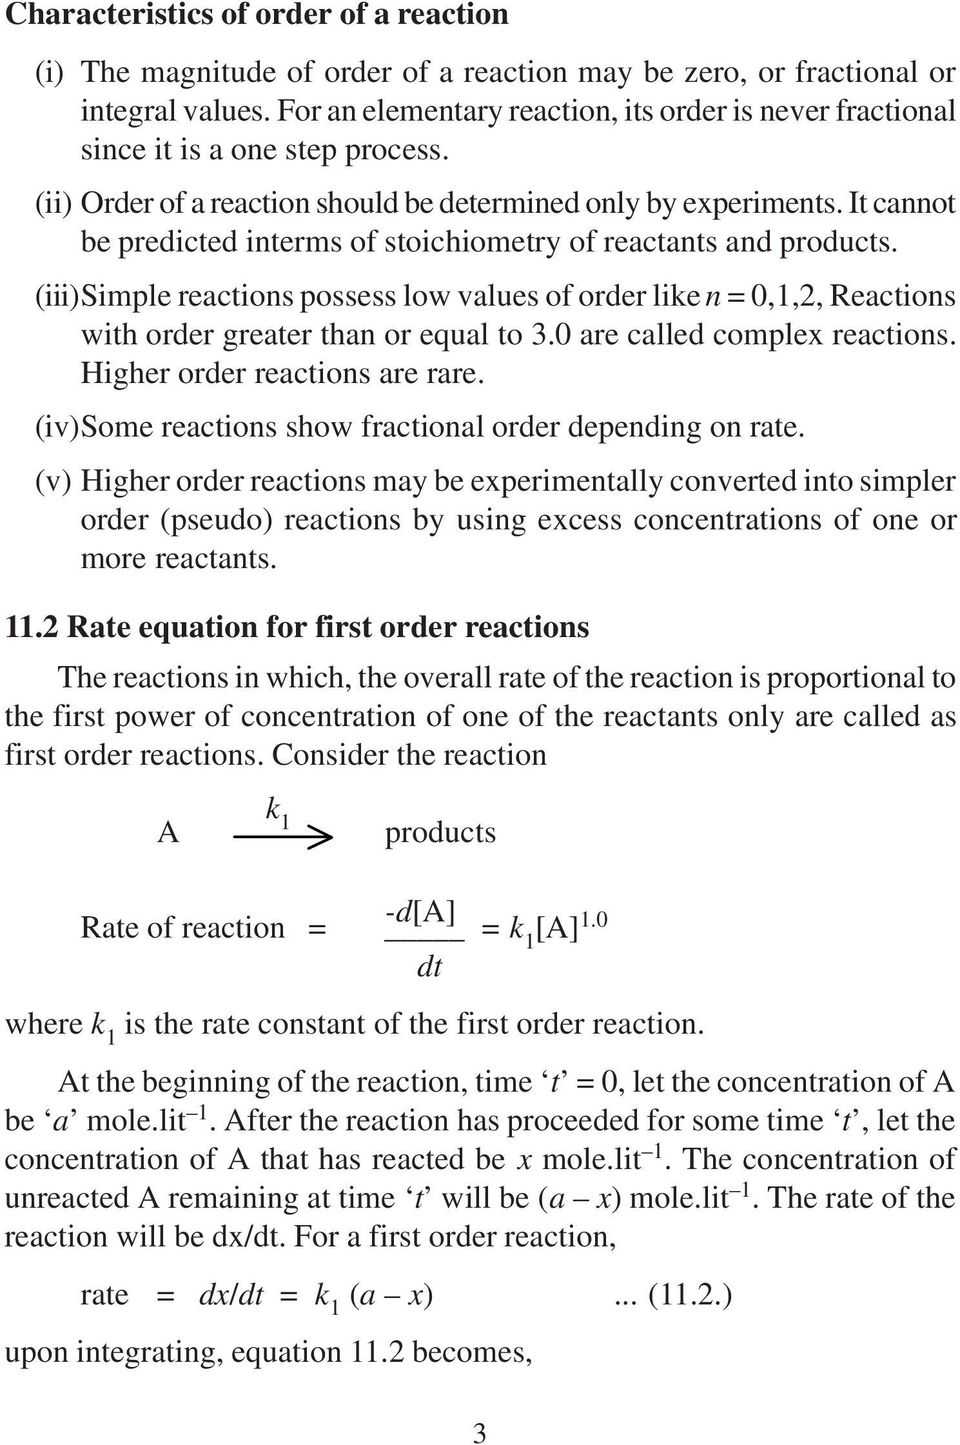 It cannot be predicted interms of stoichiometry of reactants and products. (iii)simple reactions possess low values of order like n = 0,1,2, Reactions with order greater than or equal to 3.